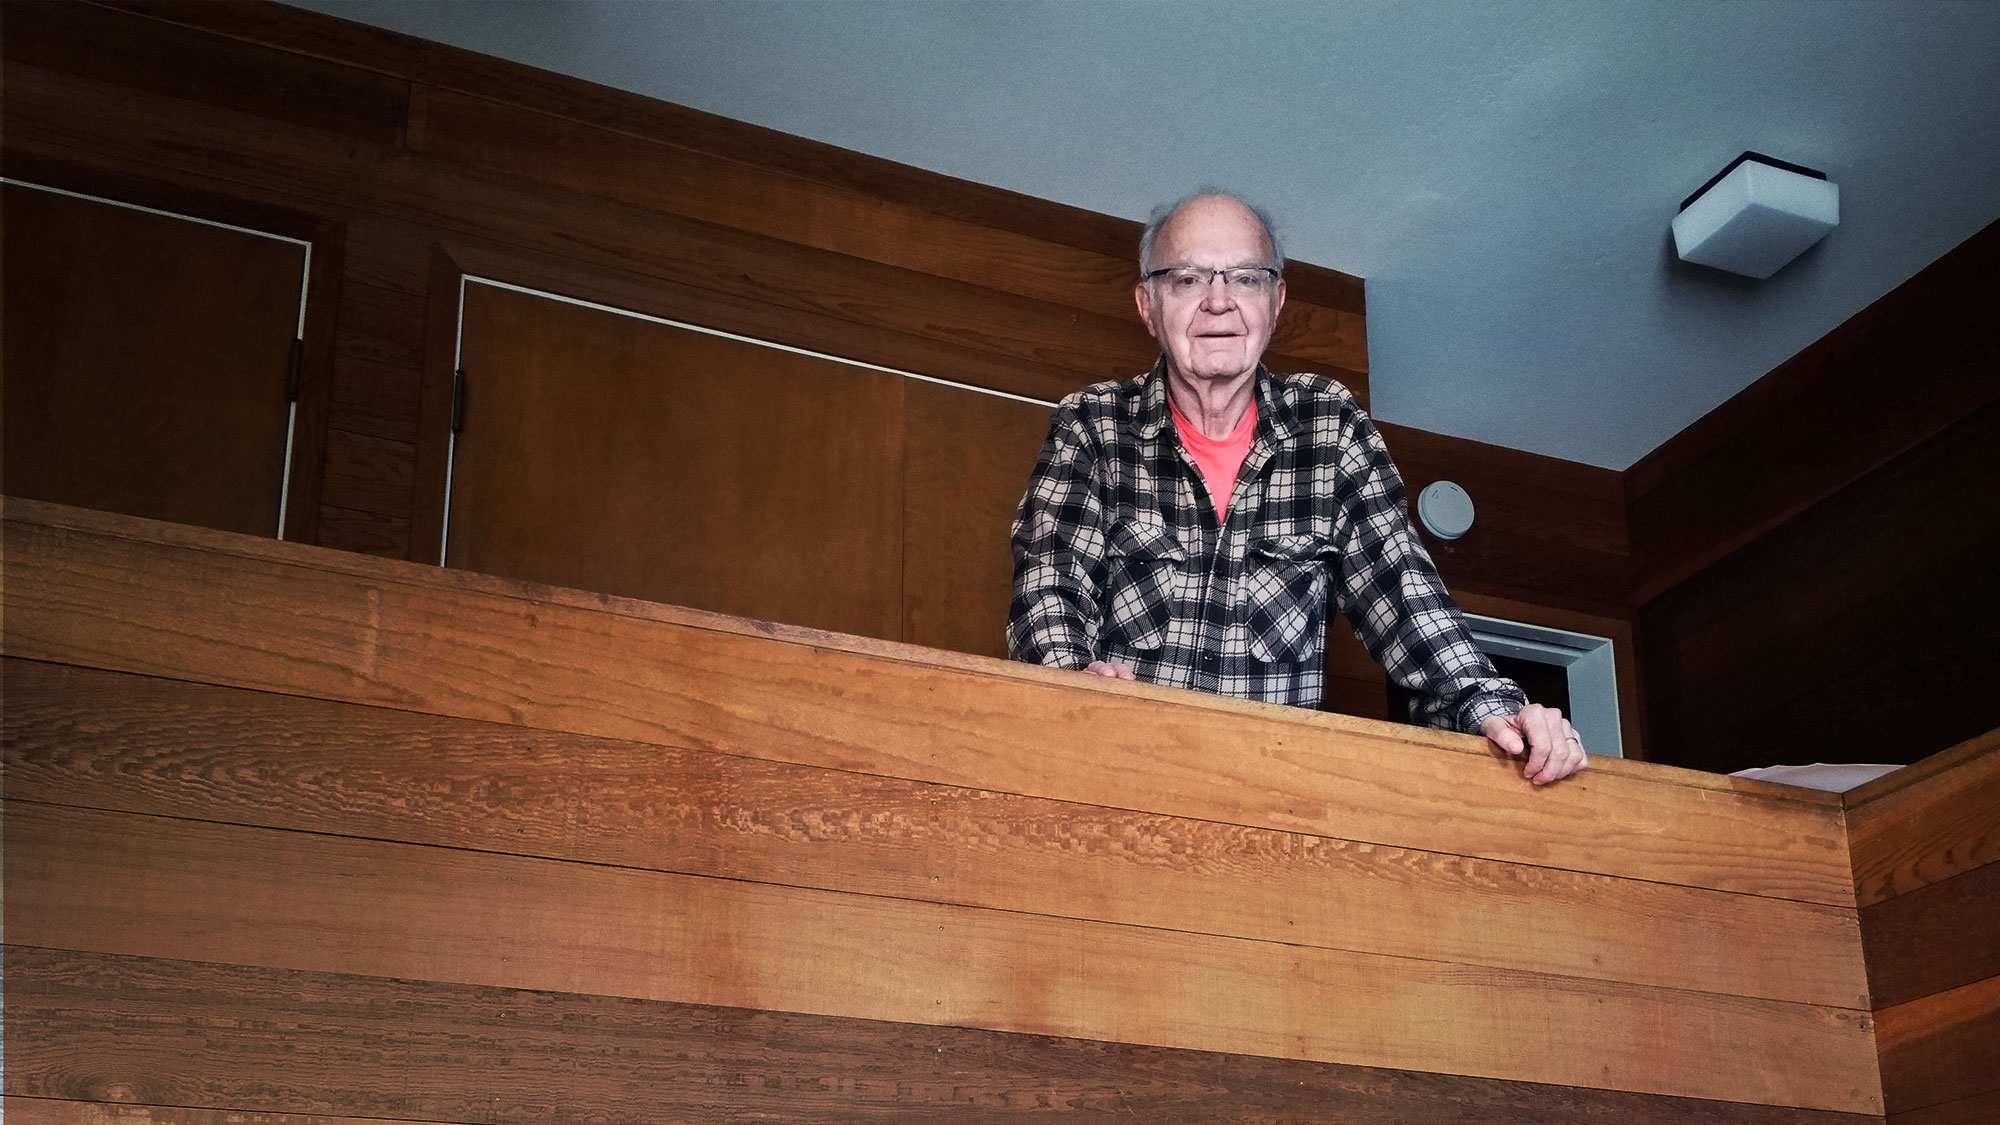 Photo of Donald Knuth at his home on a wooden balcony